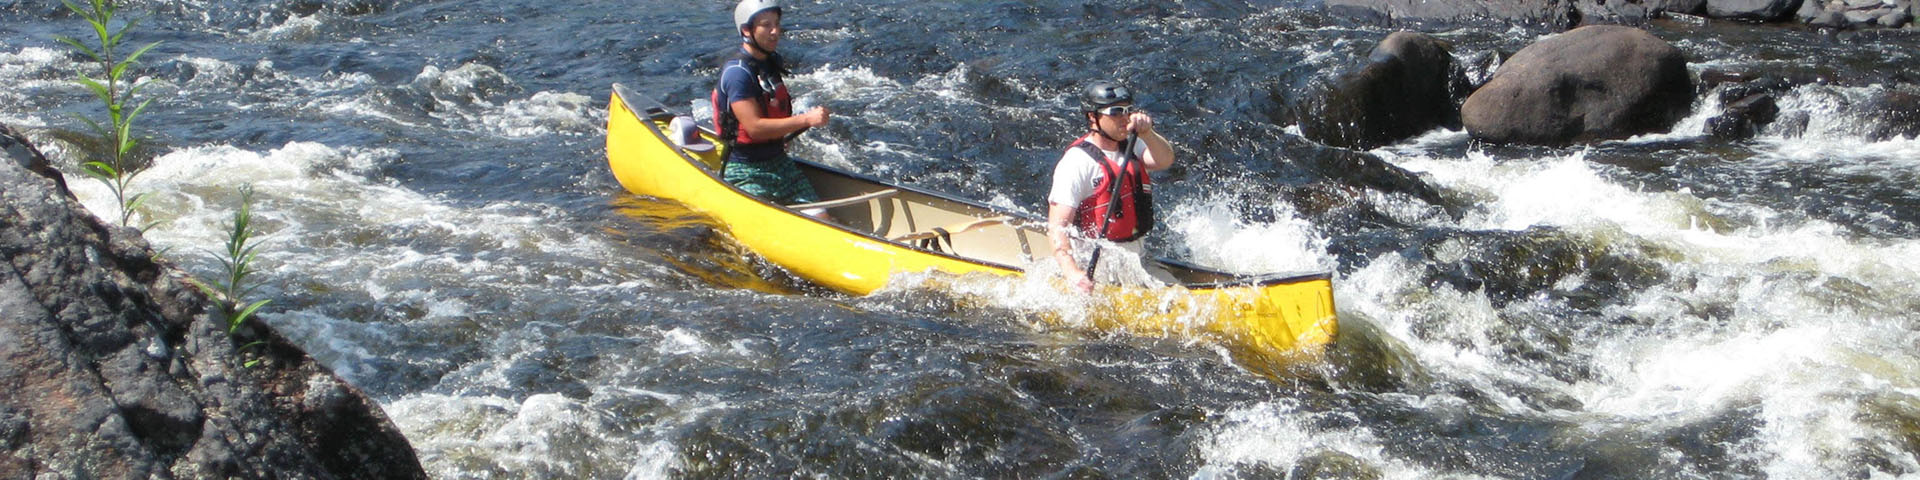 Petawawa River Canoe Trip by Black Feather - Image 305